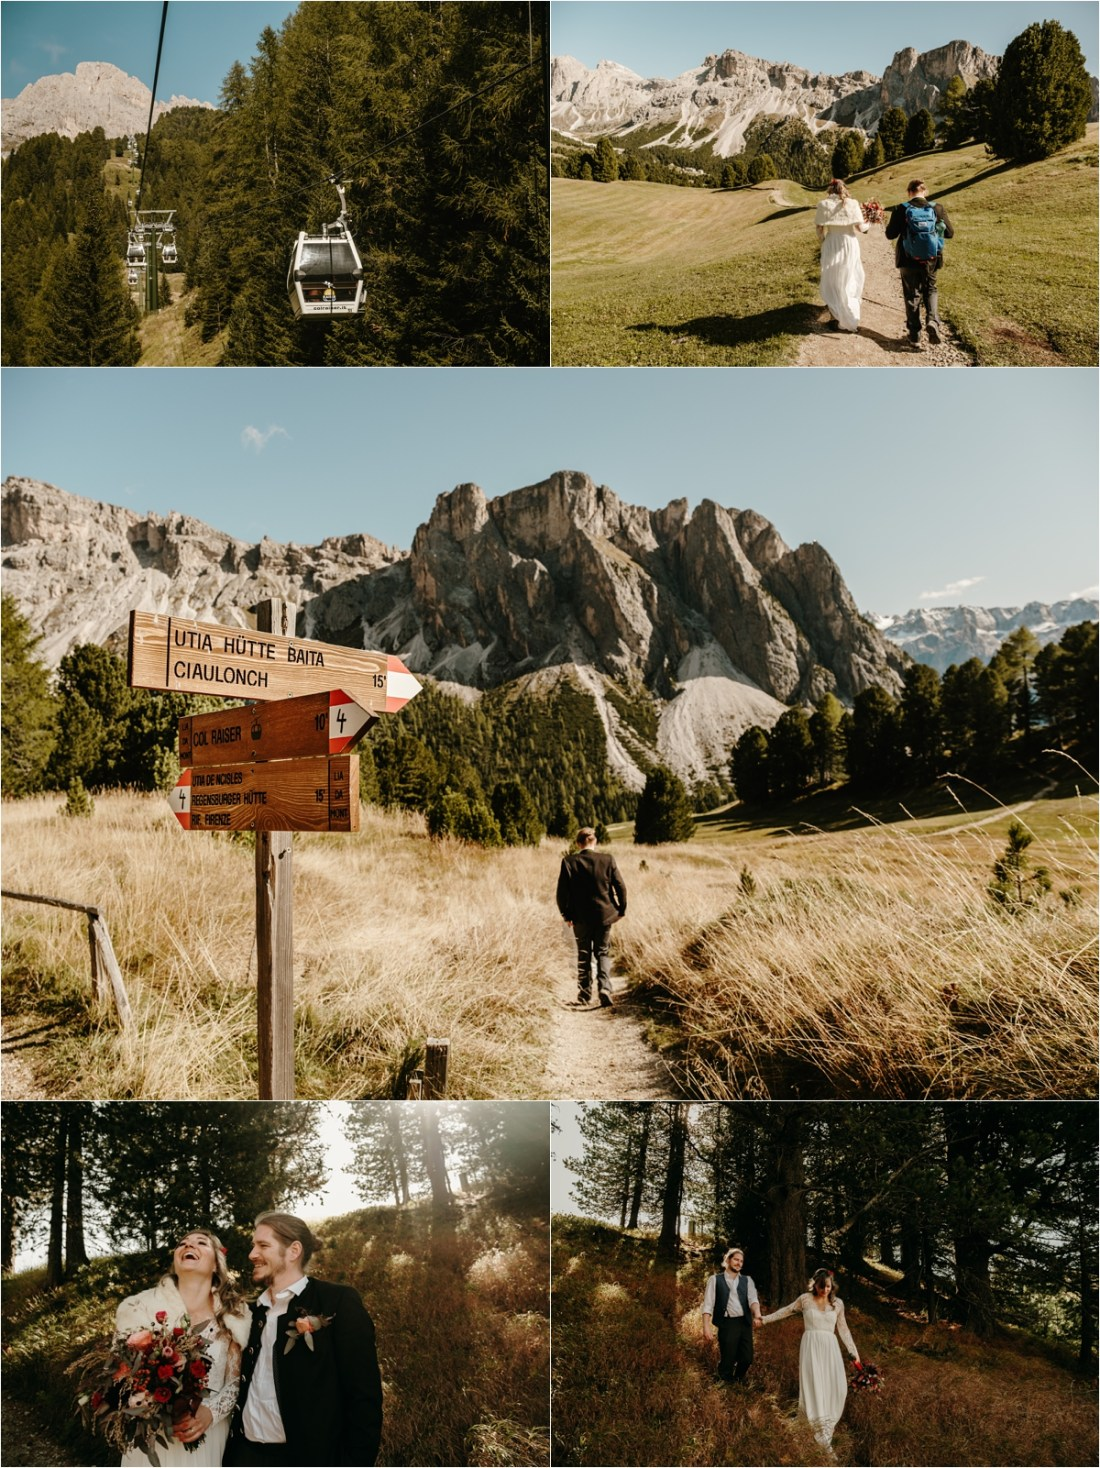 Bride and groom travel up a cable car on their wedding day. Photos by Wild Connections Photography